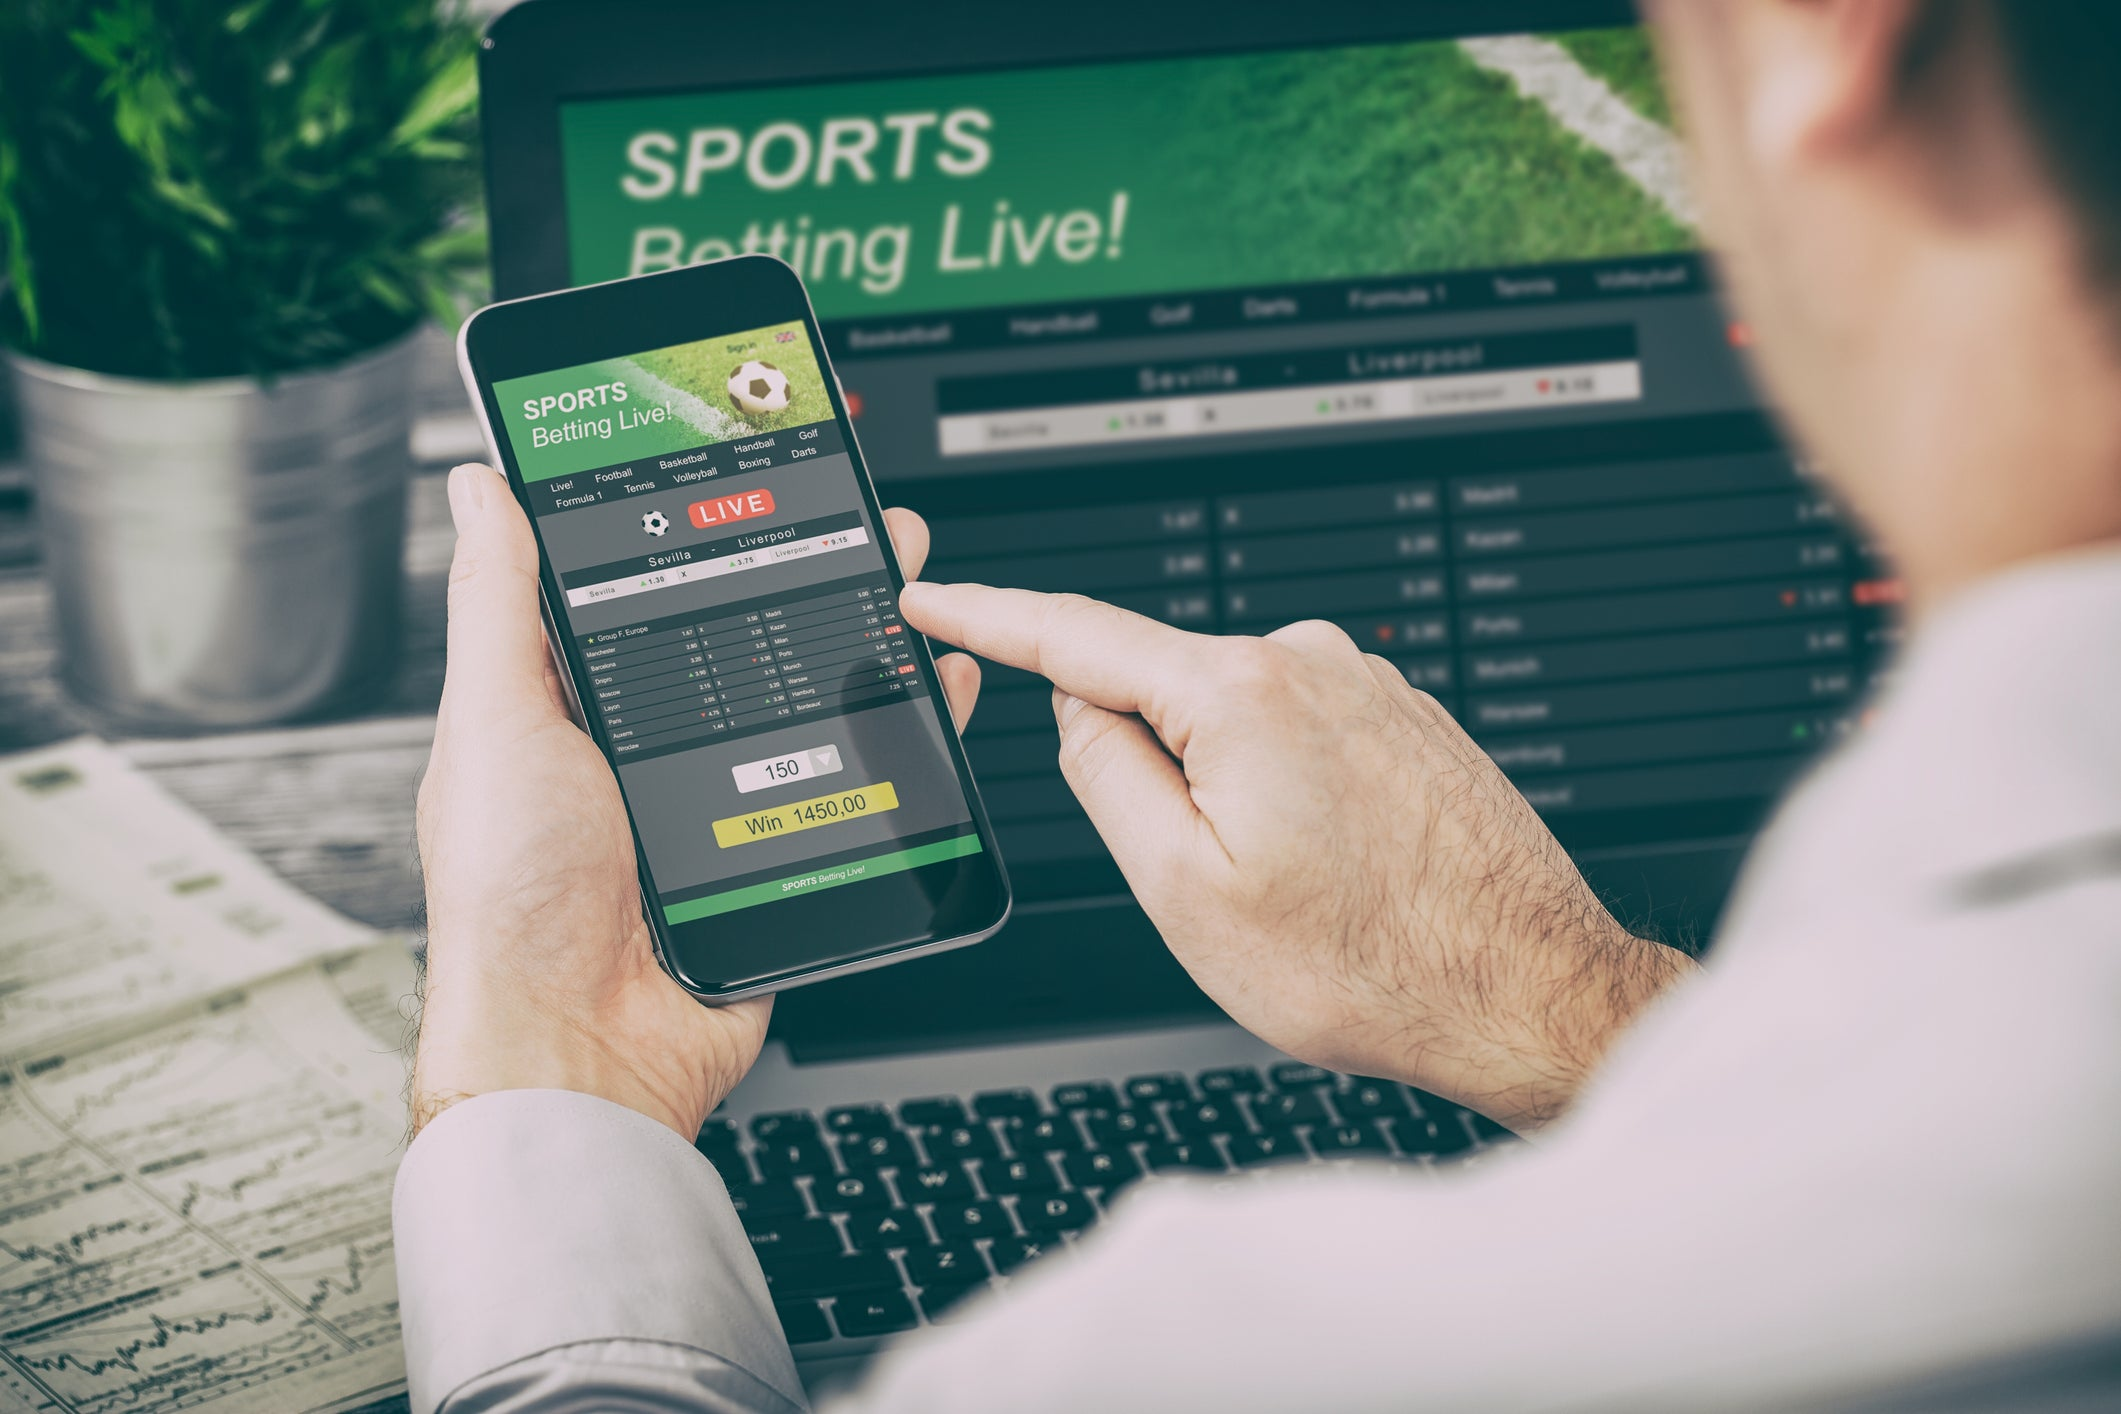 3 Sports Betting Stocks Poised for a Bull Run